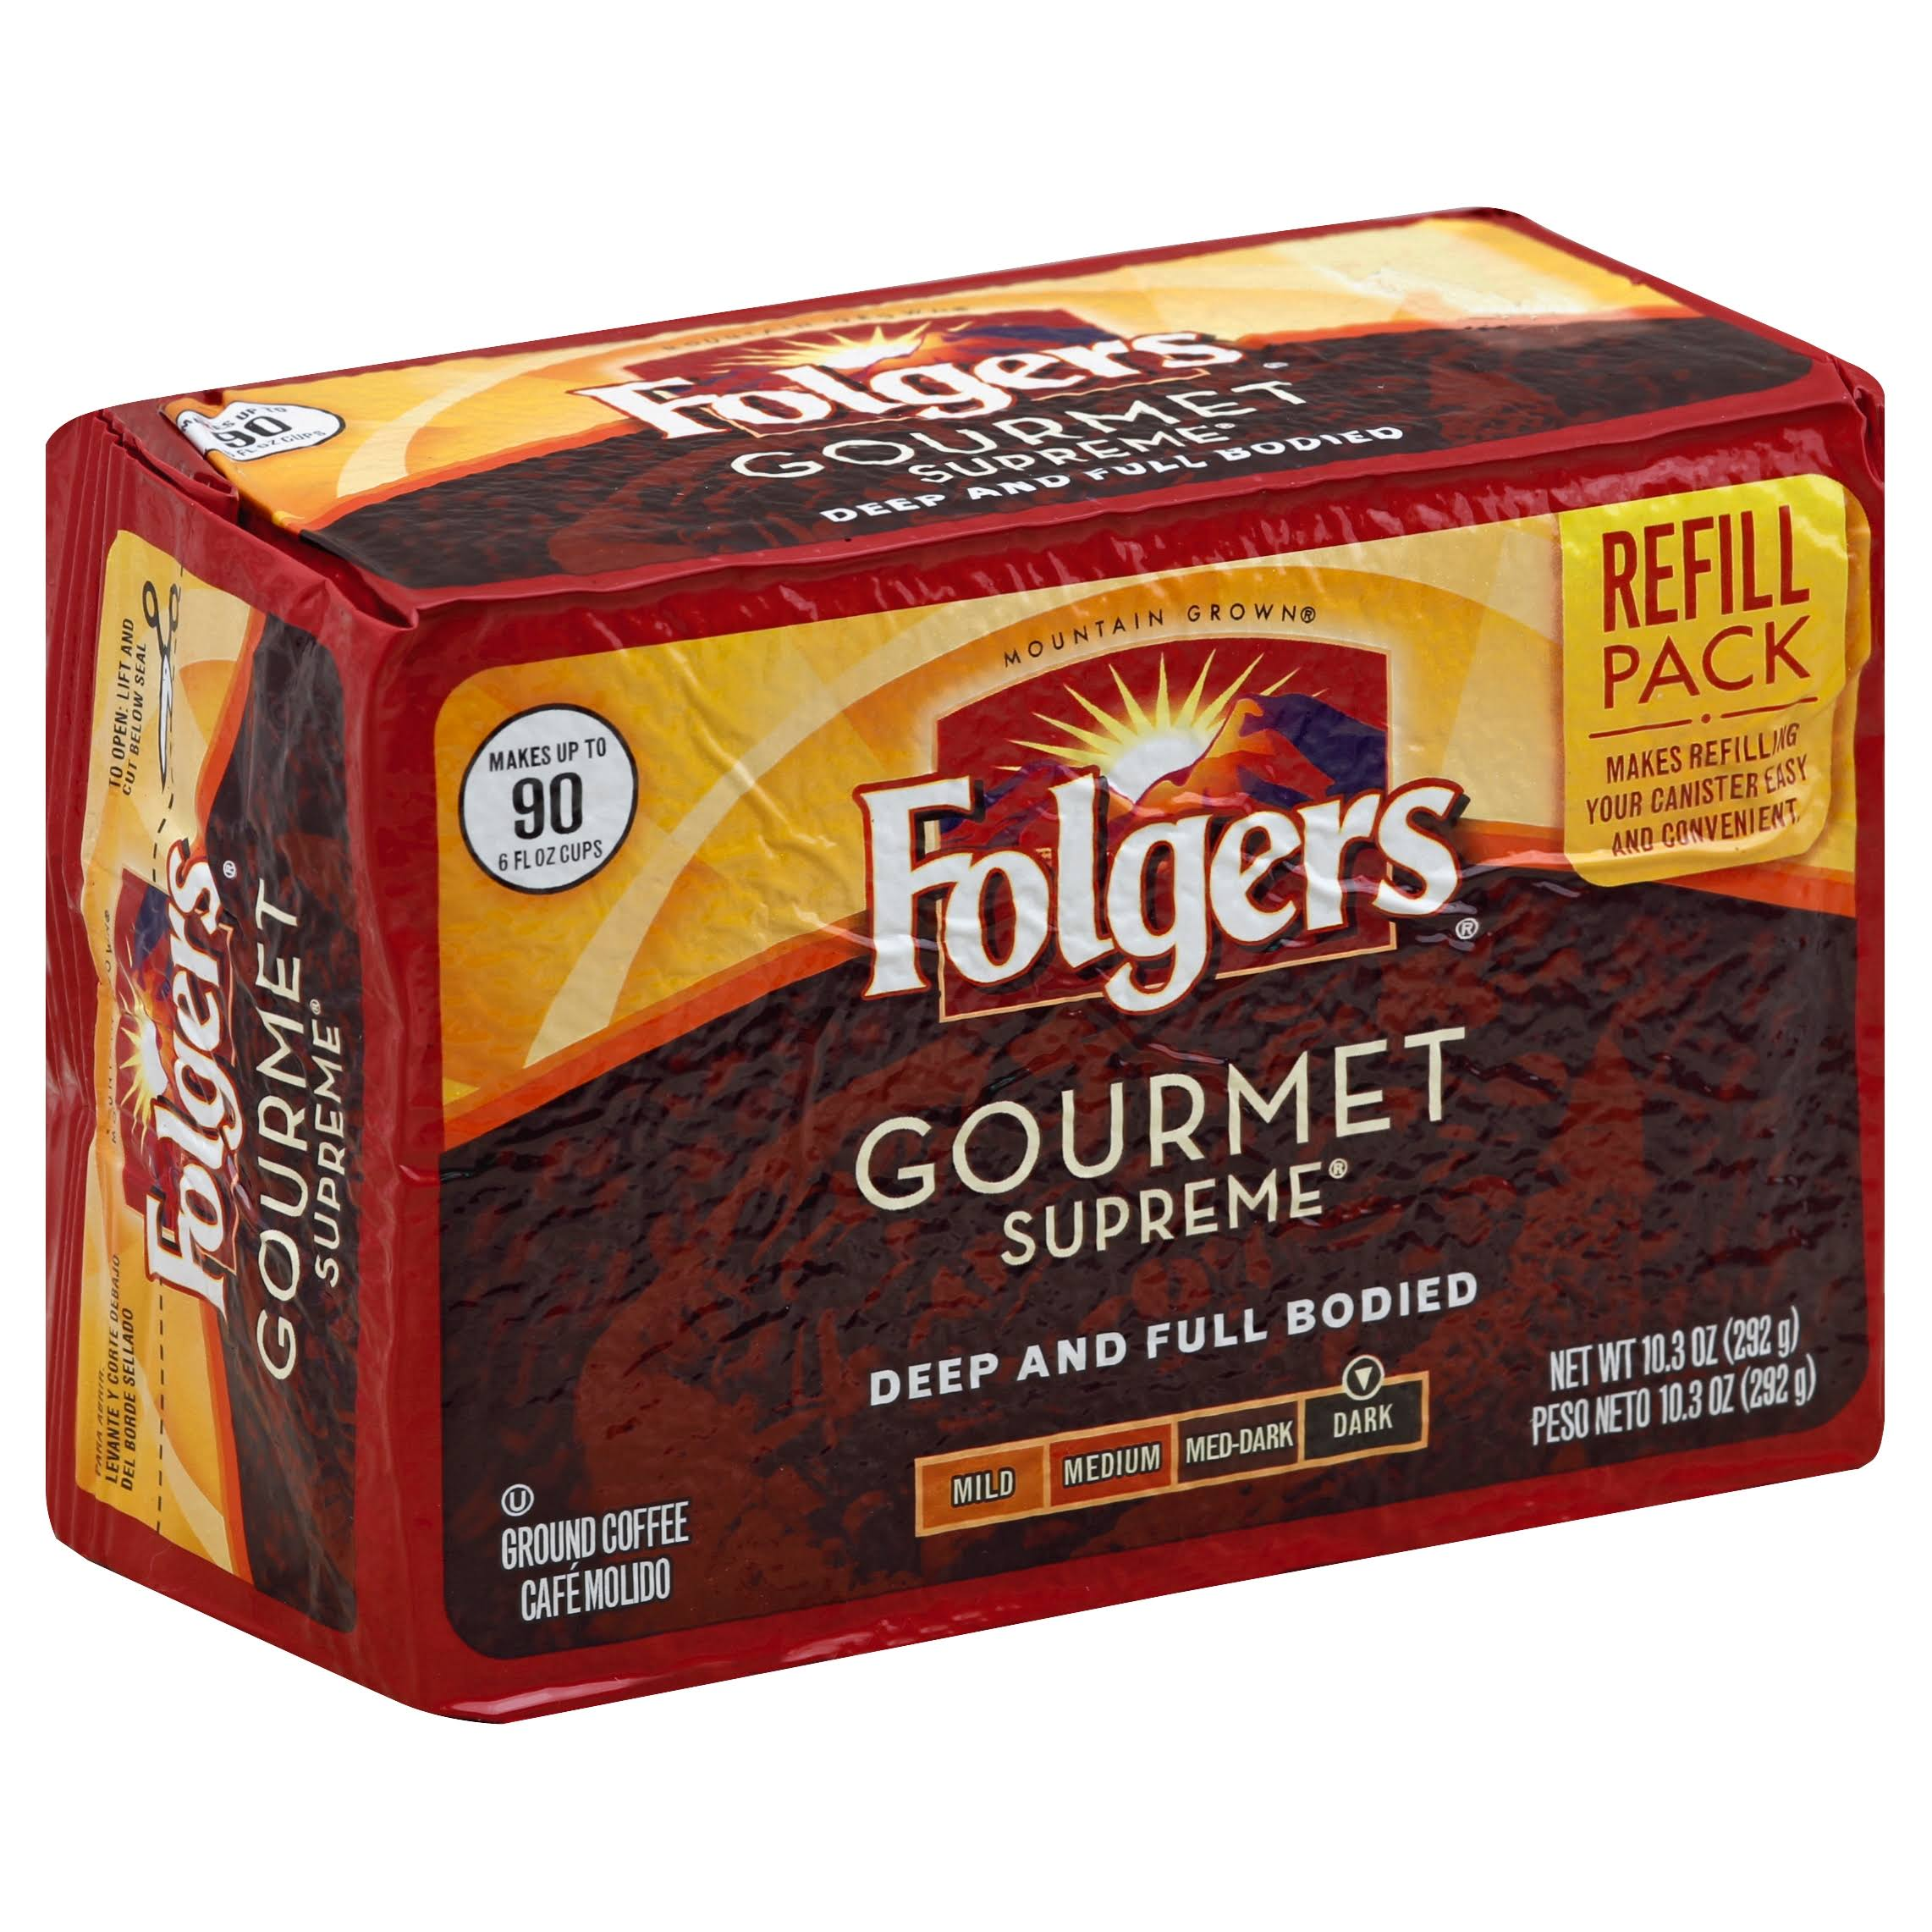 Folgers Gourmet Supreme Ground Coffee Refill Pack - 10.3oz